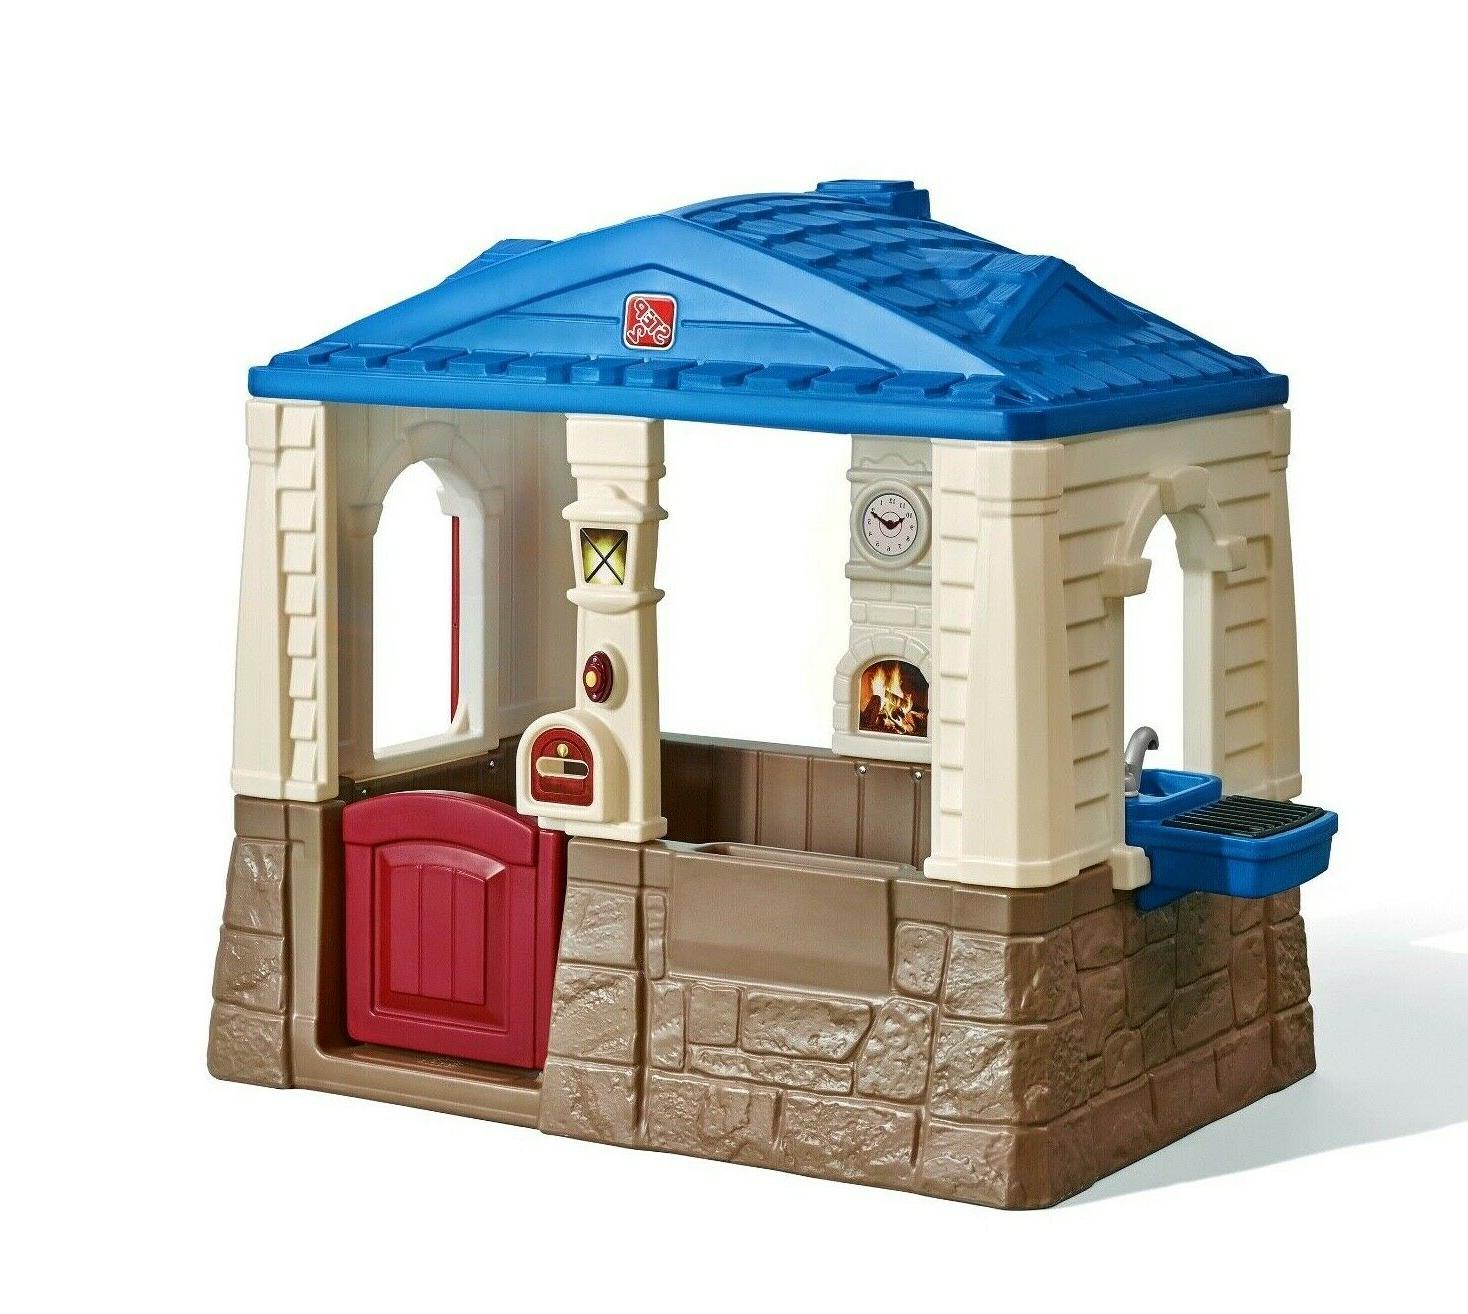 Deluxe Playhouse Outdoor Play House Plastic